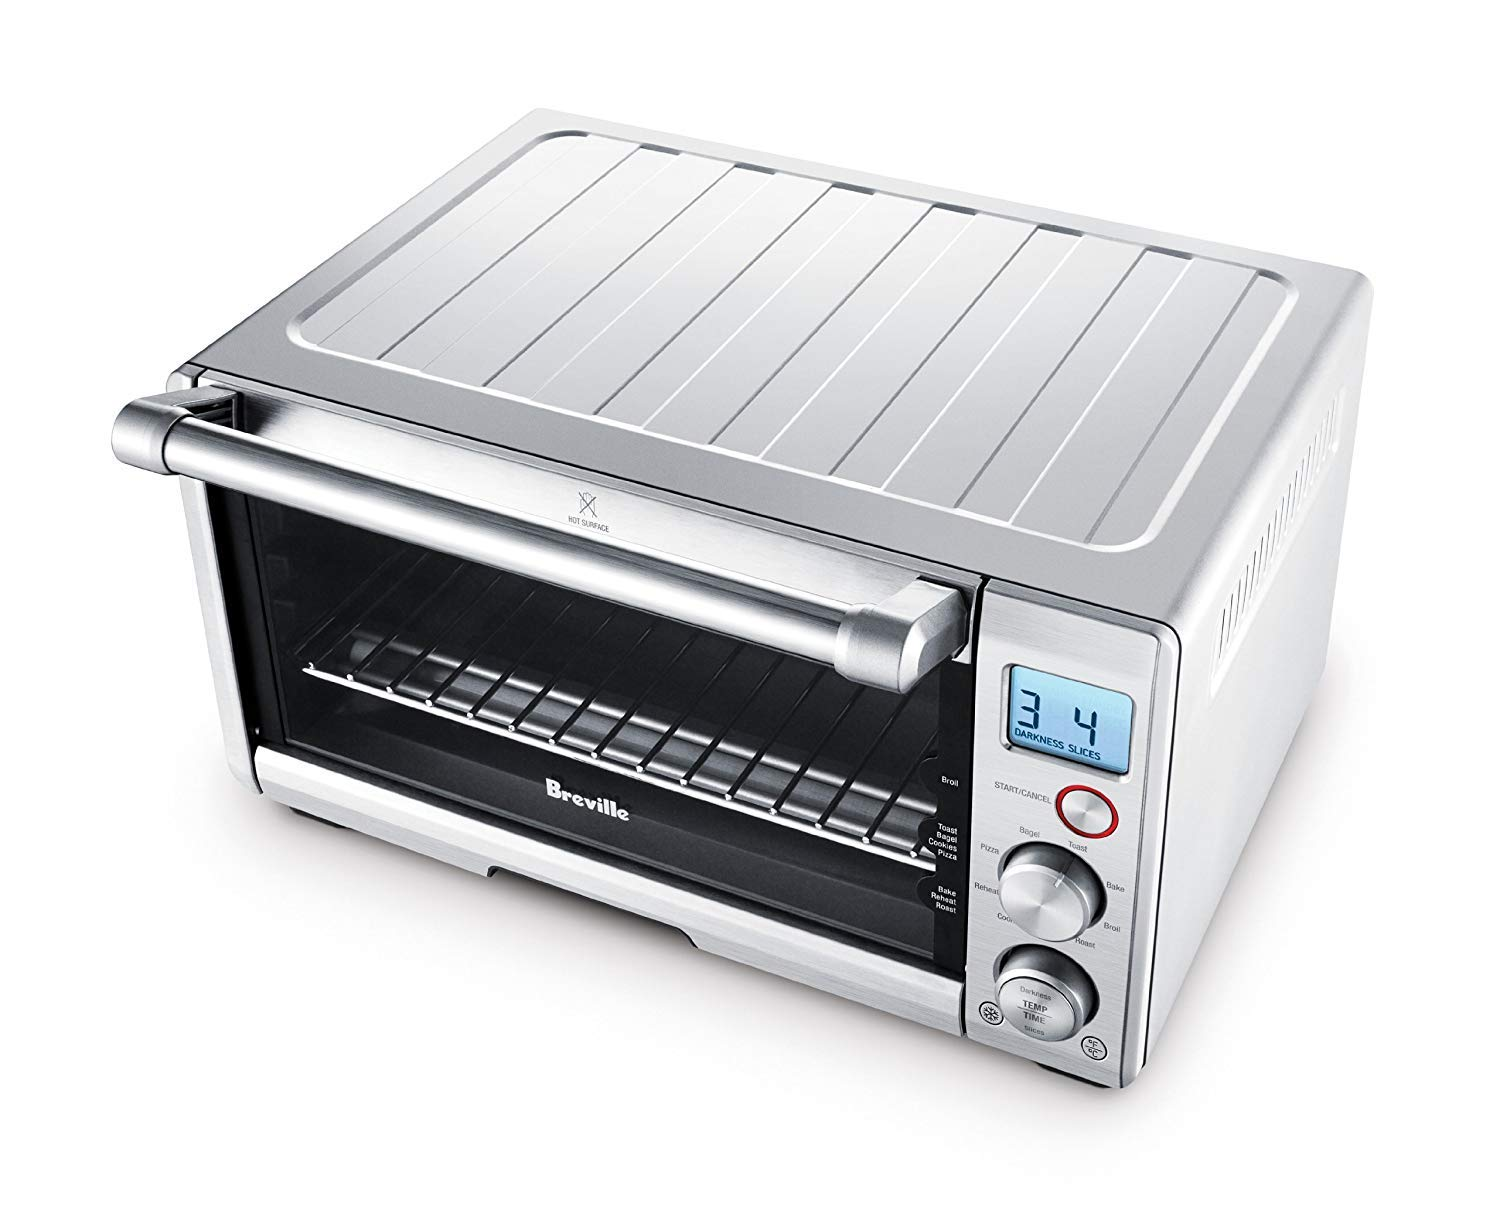 Breville the Compact Smart Oven 1800W Convection Toaster Oven - BOV650XL by Breville (Image #7)